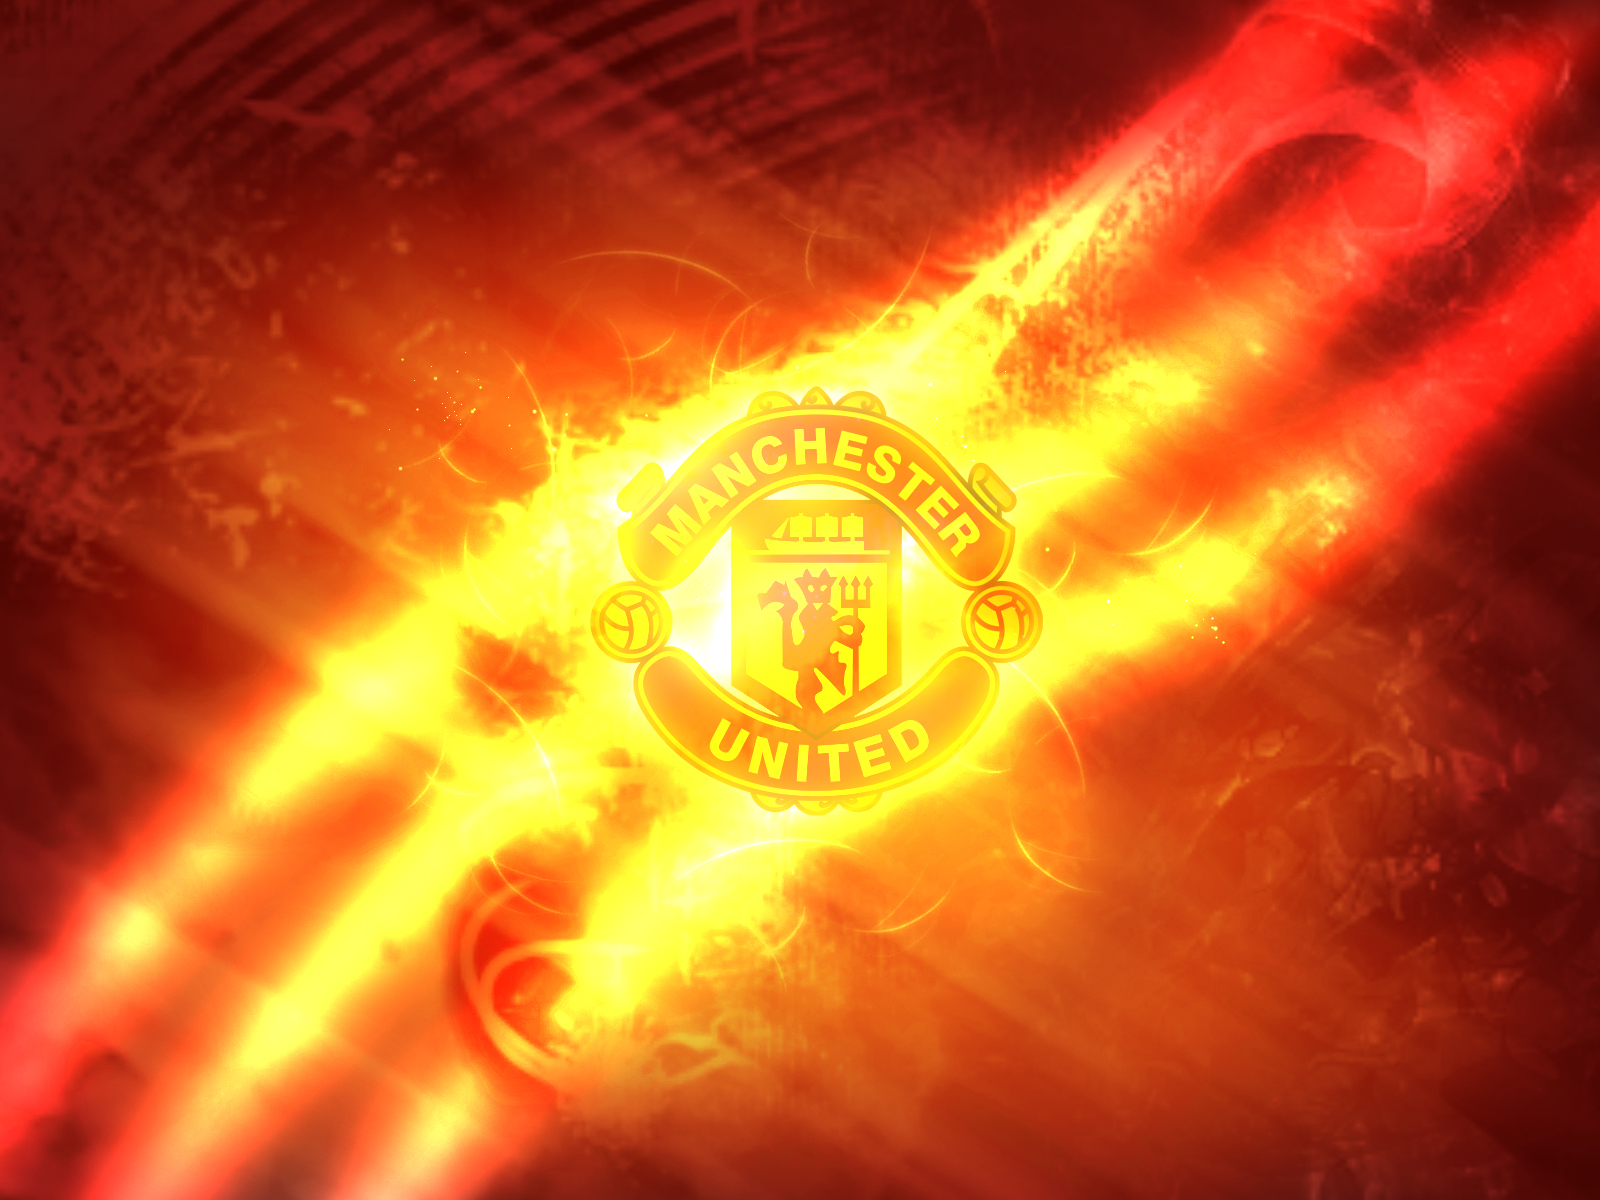 Manchester United Wallpapers HD 2012